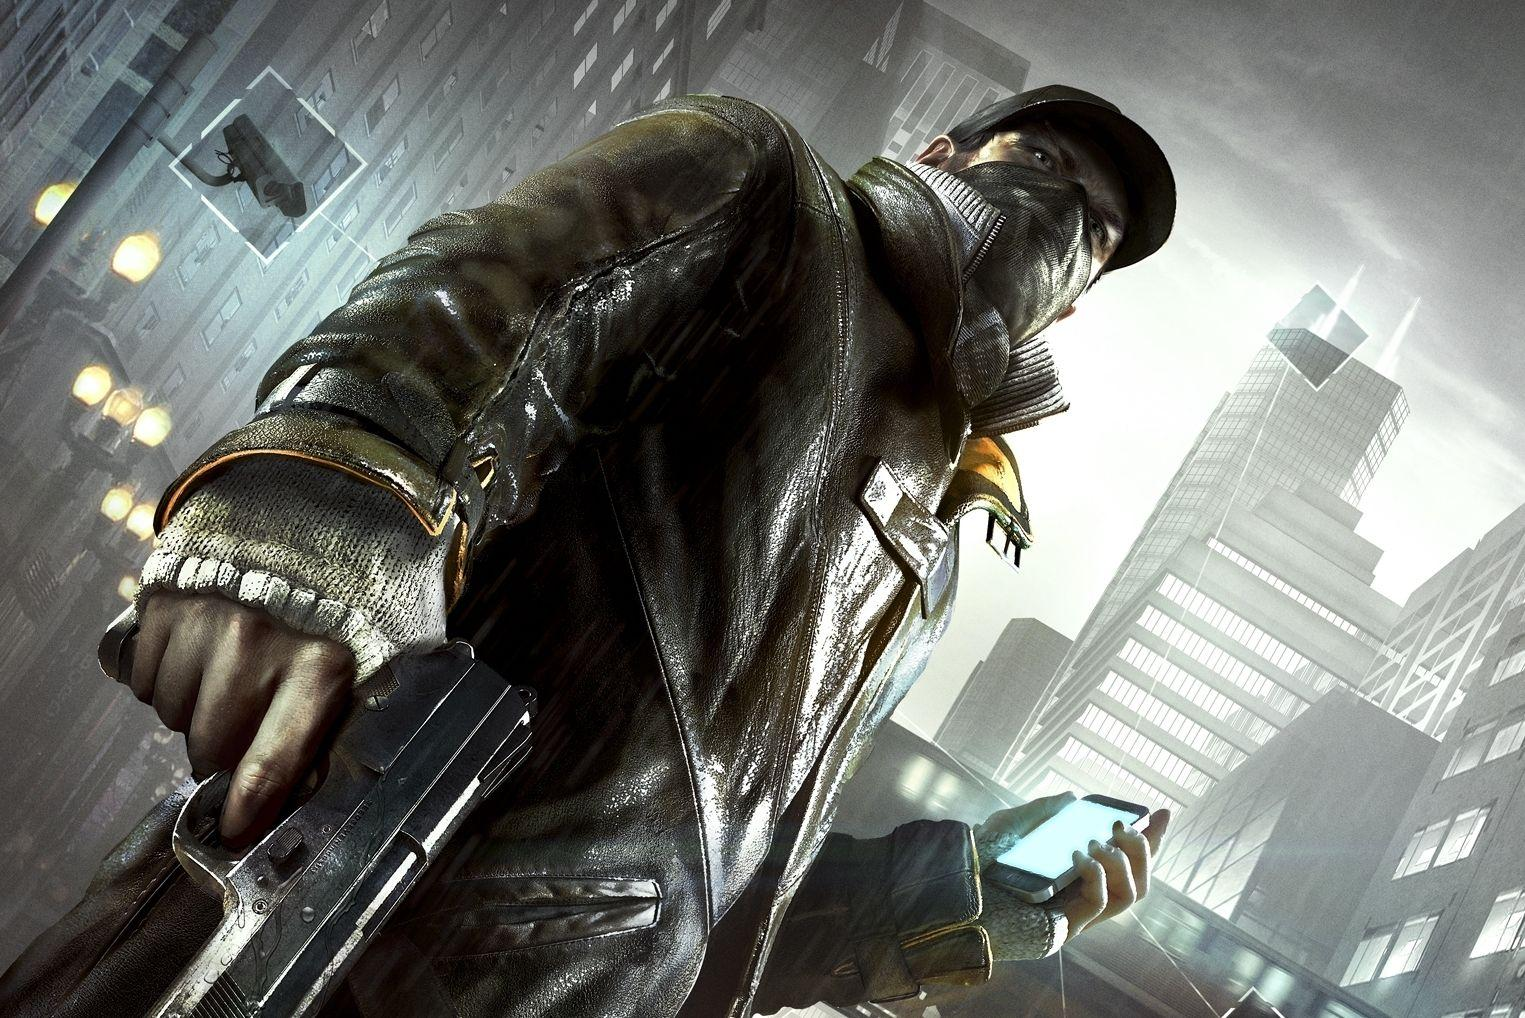 Watch Dogs 1 Wallpapers Wallpaper Cave